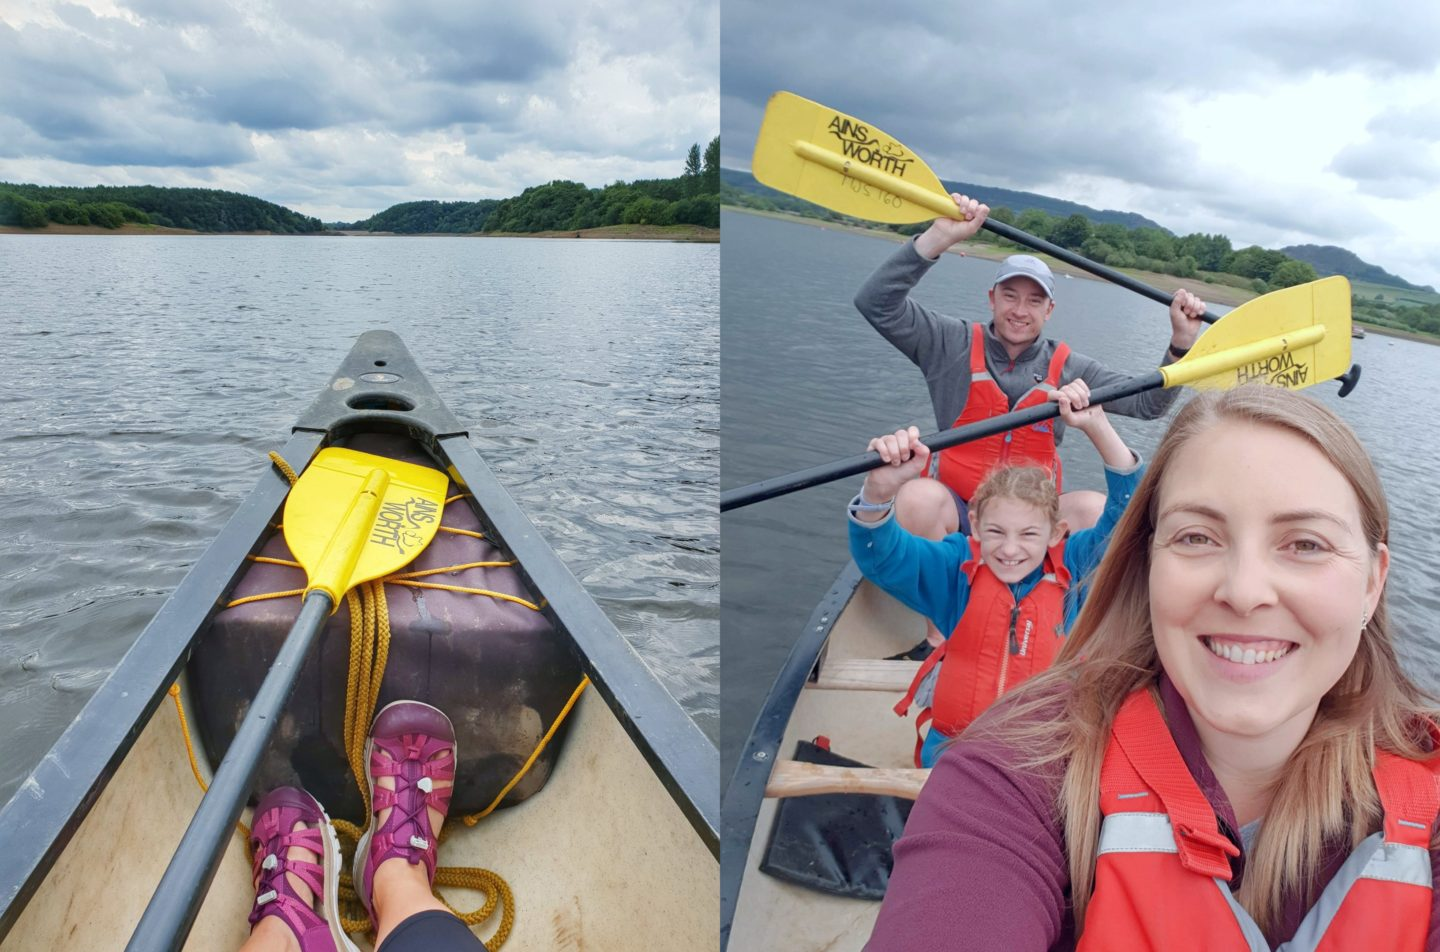 Canoeing in the Peak District